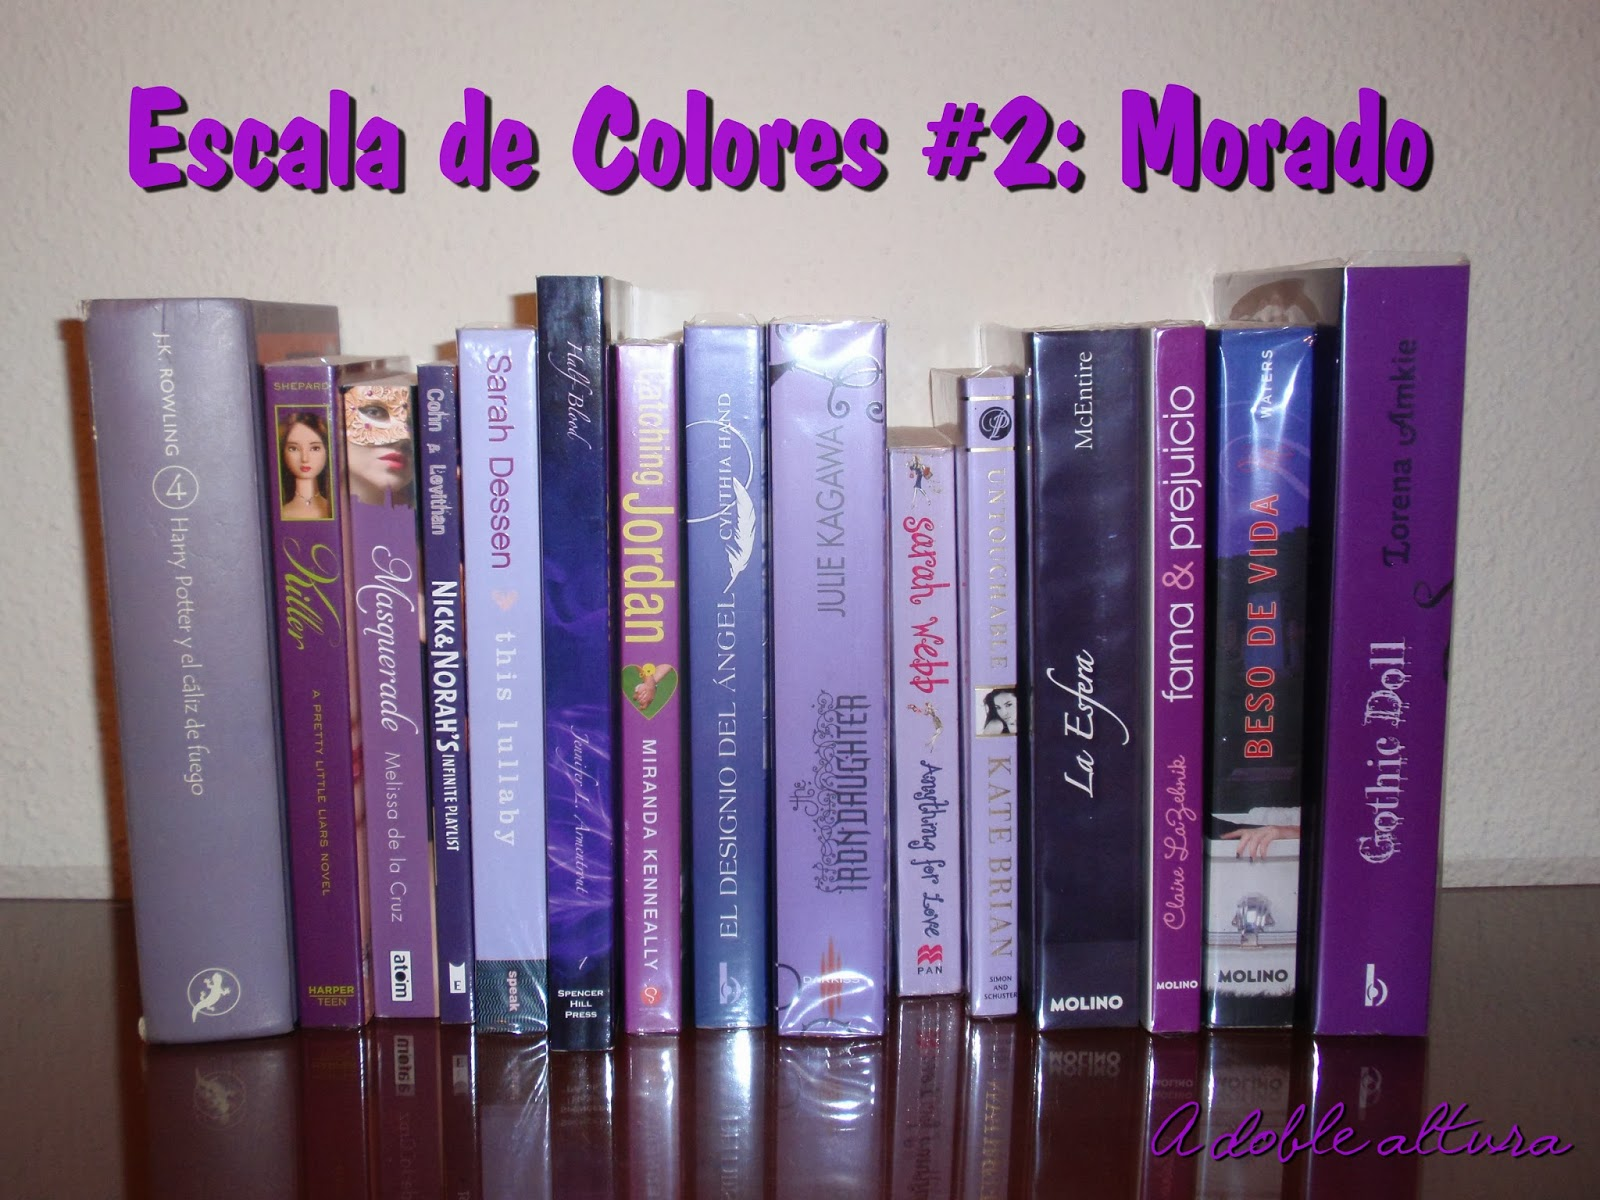 A doble altura: Escala de colores #2: Morado